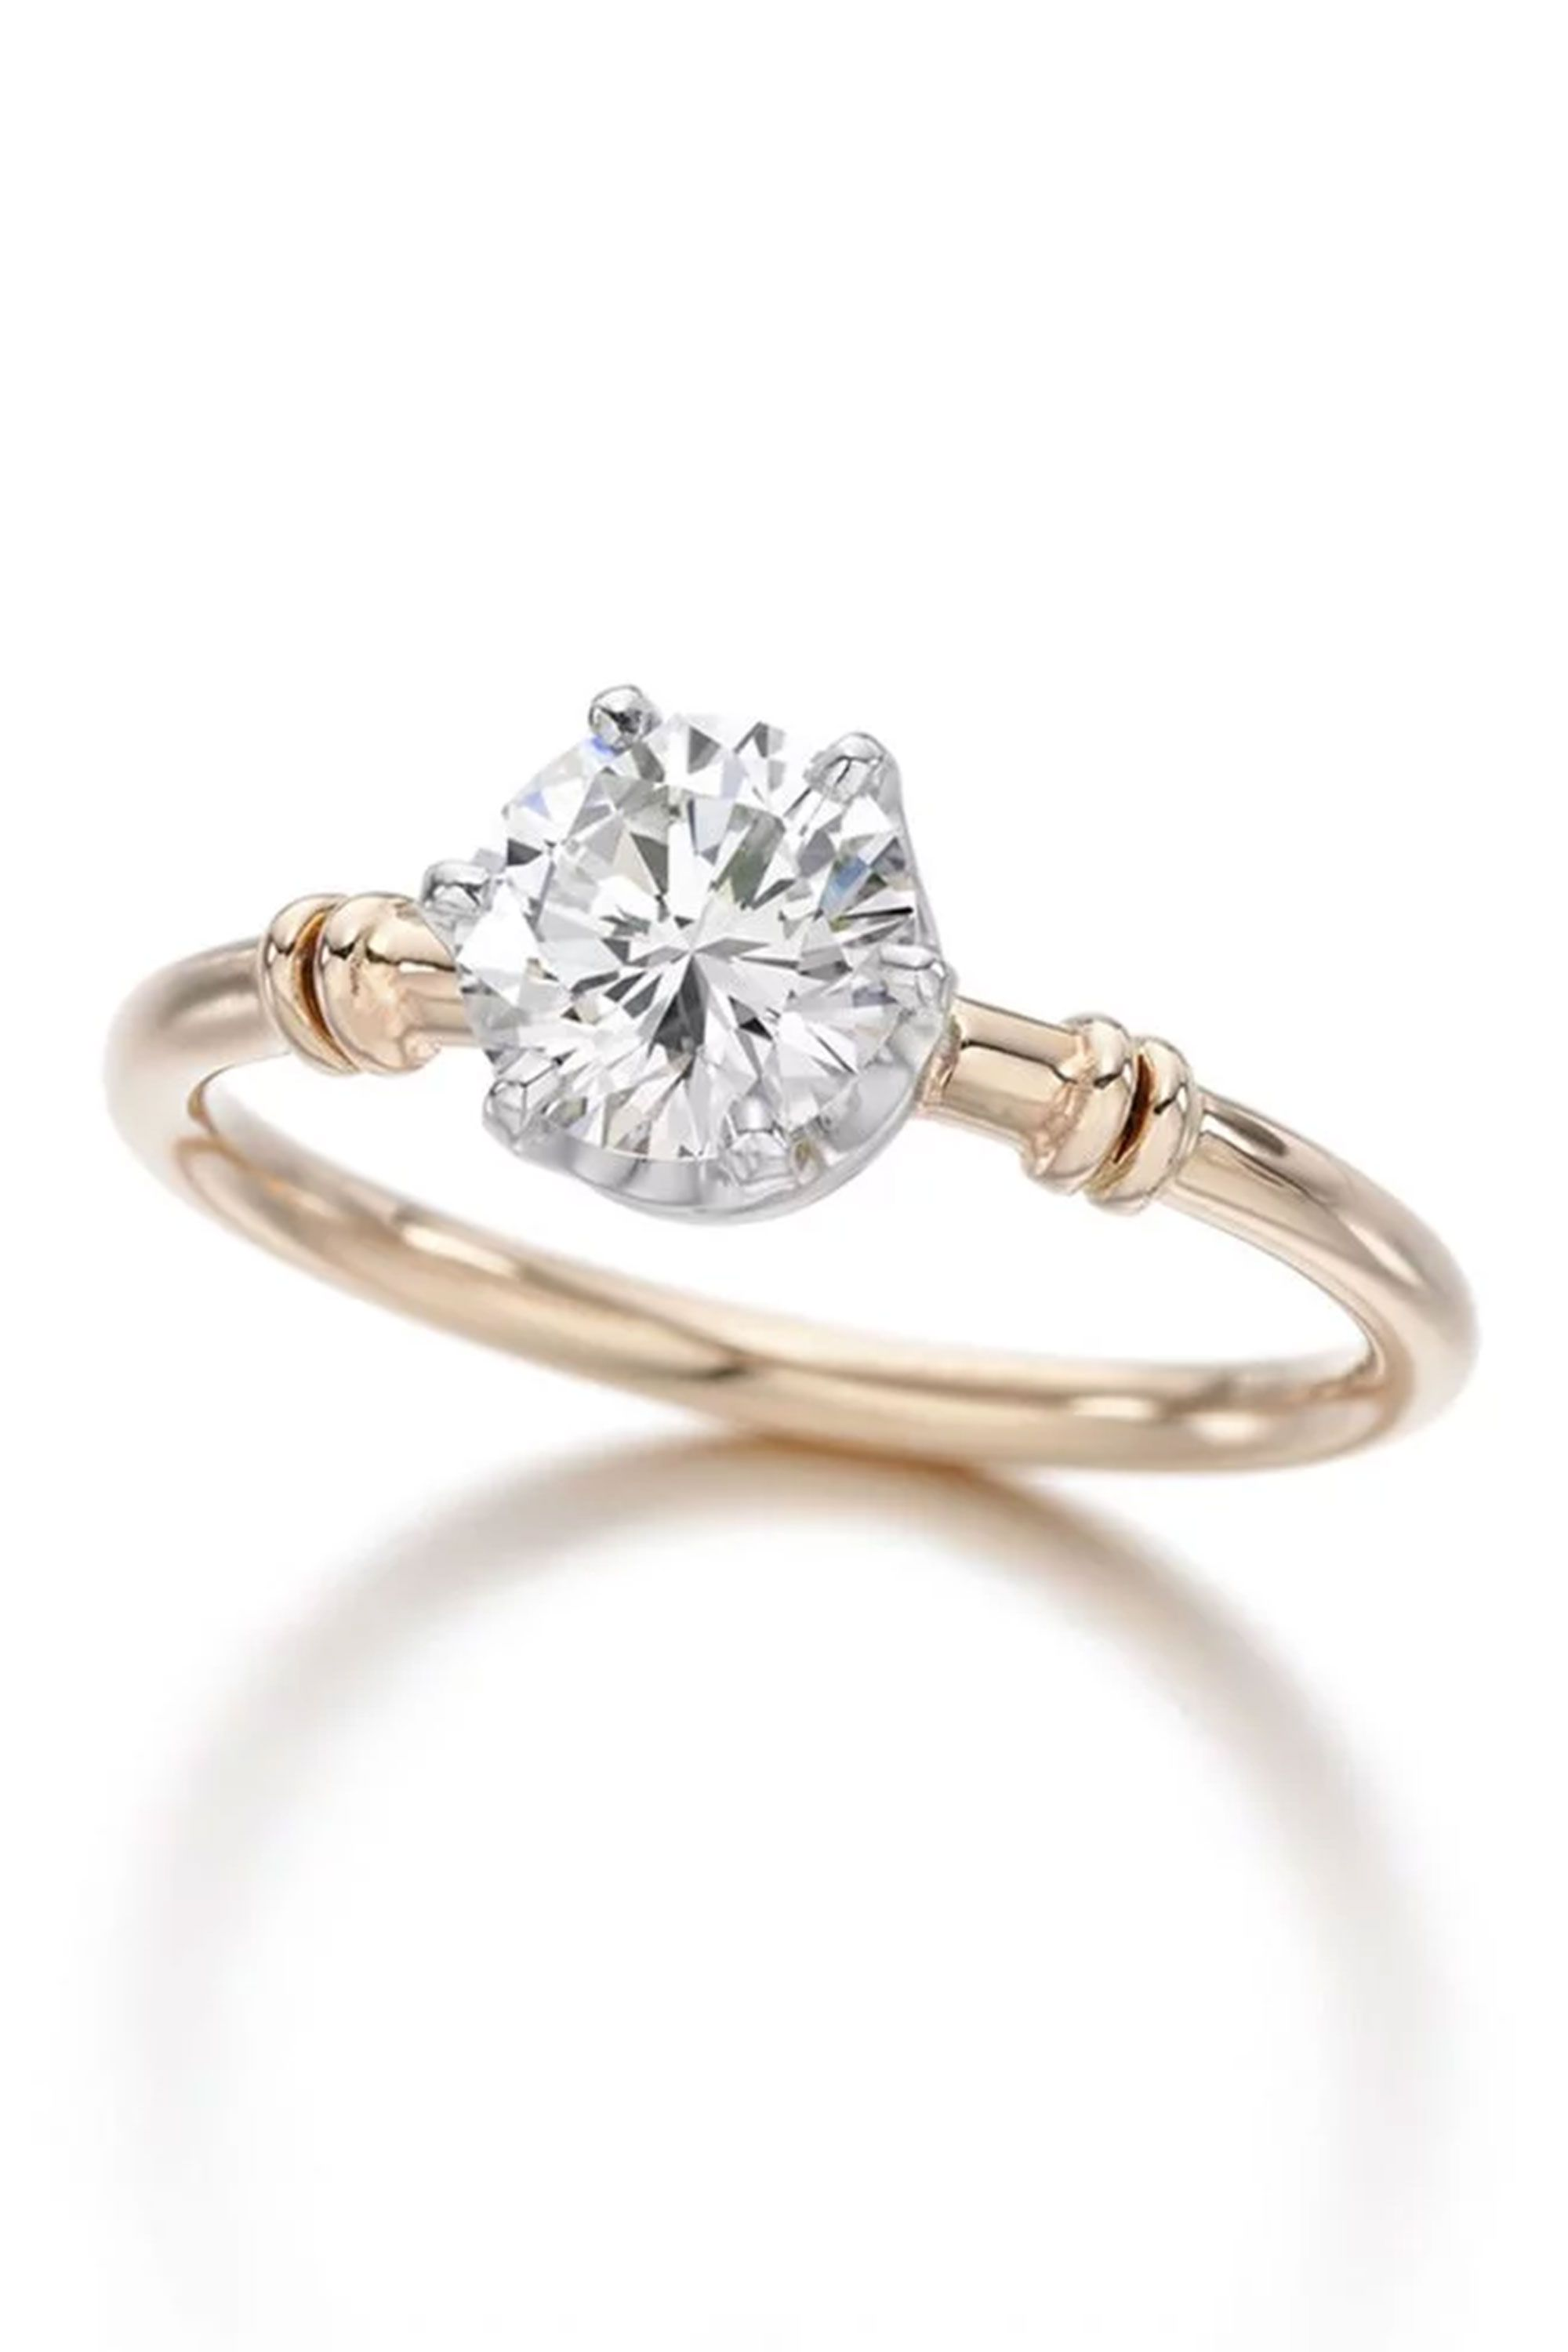 Best Enement Ring Designers | Our Guide To The Best Engagement Rings Designer And Classic